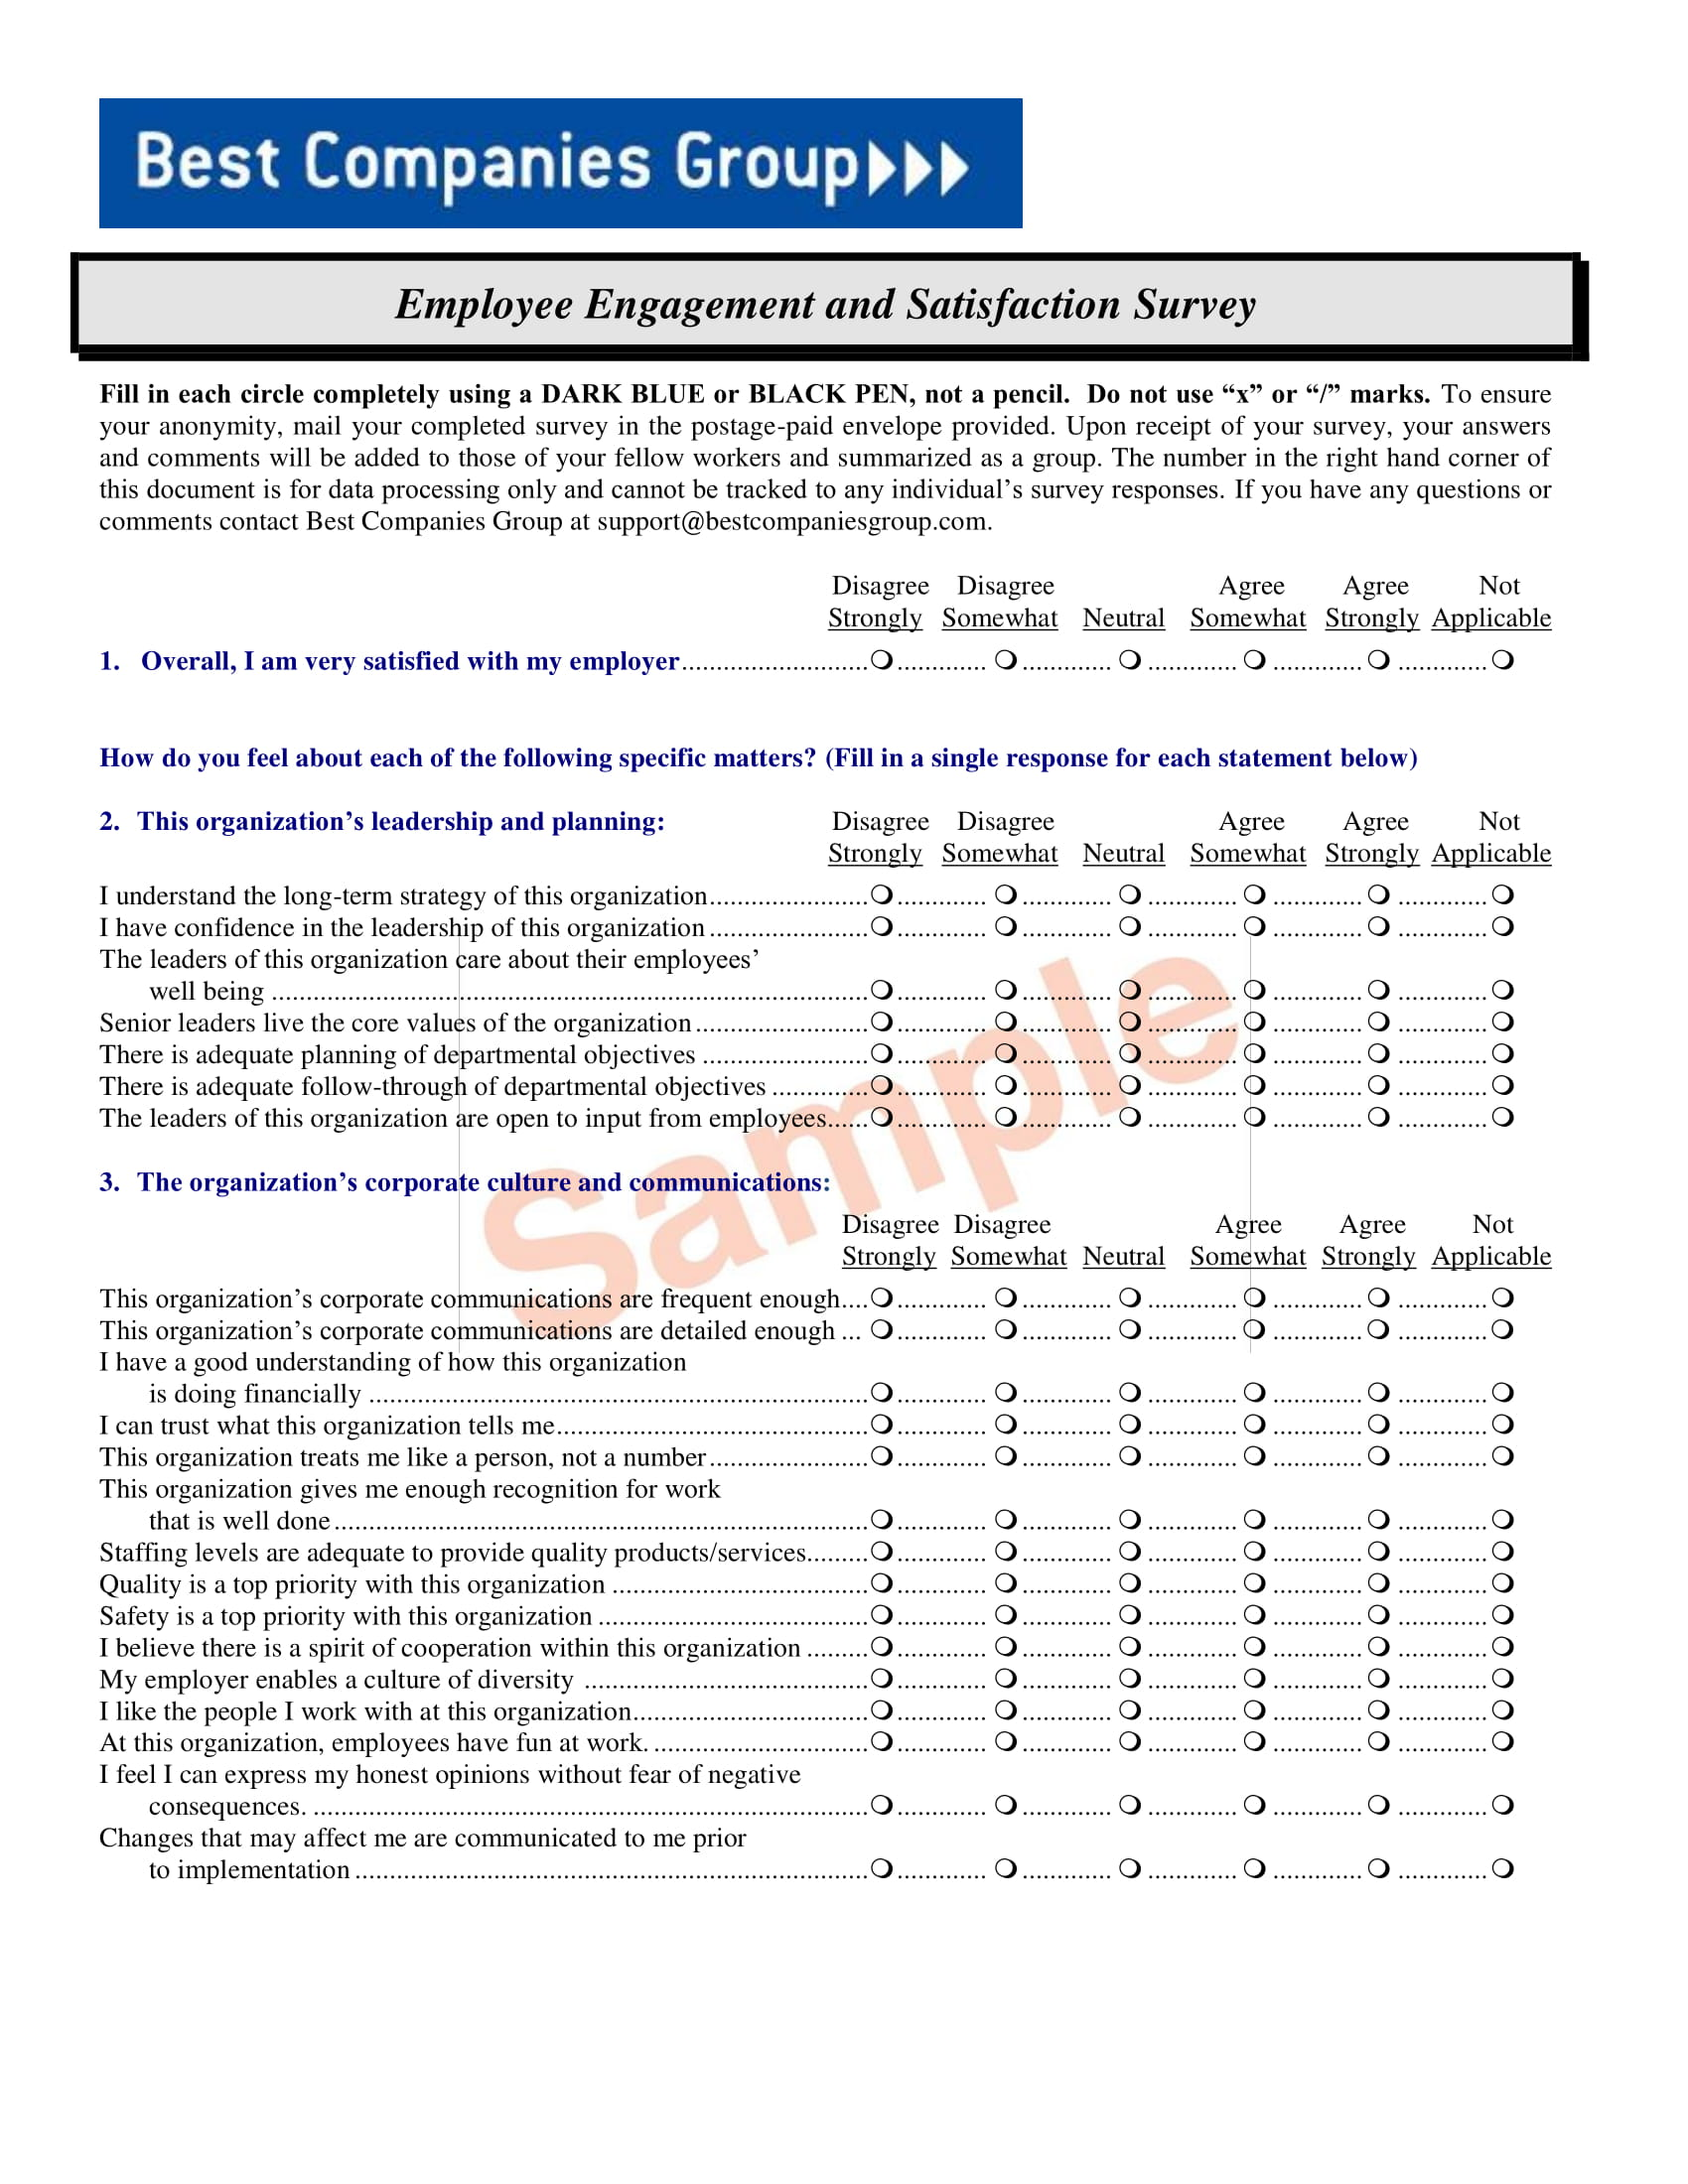 employee engagement and satisfaction survey form